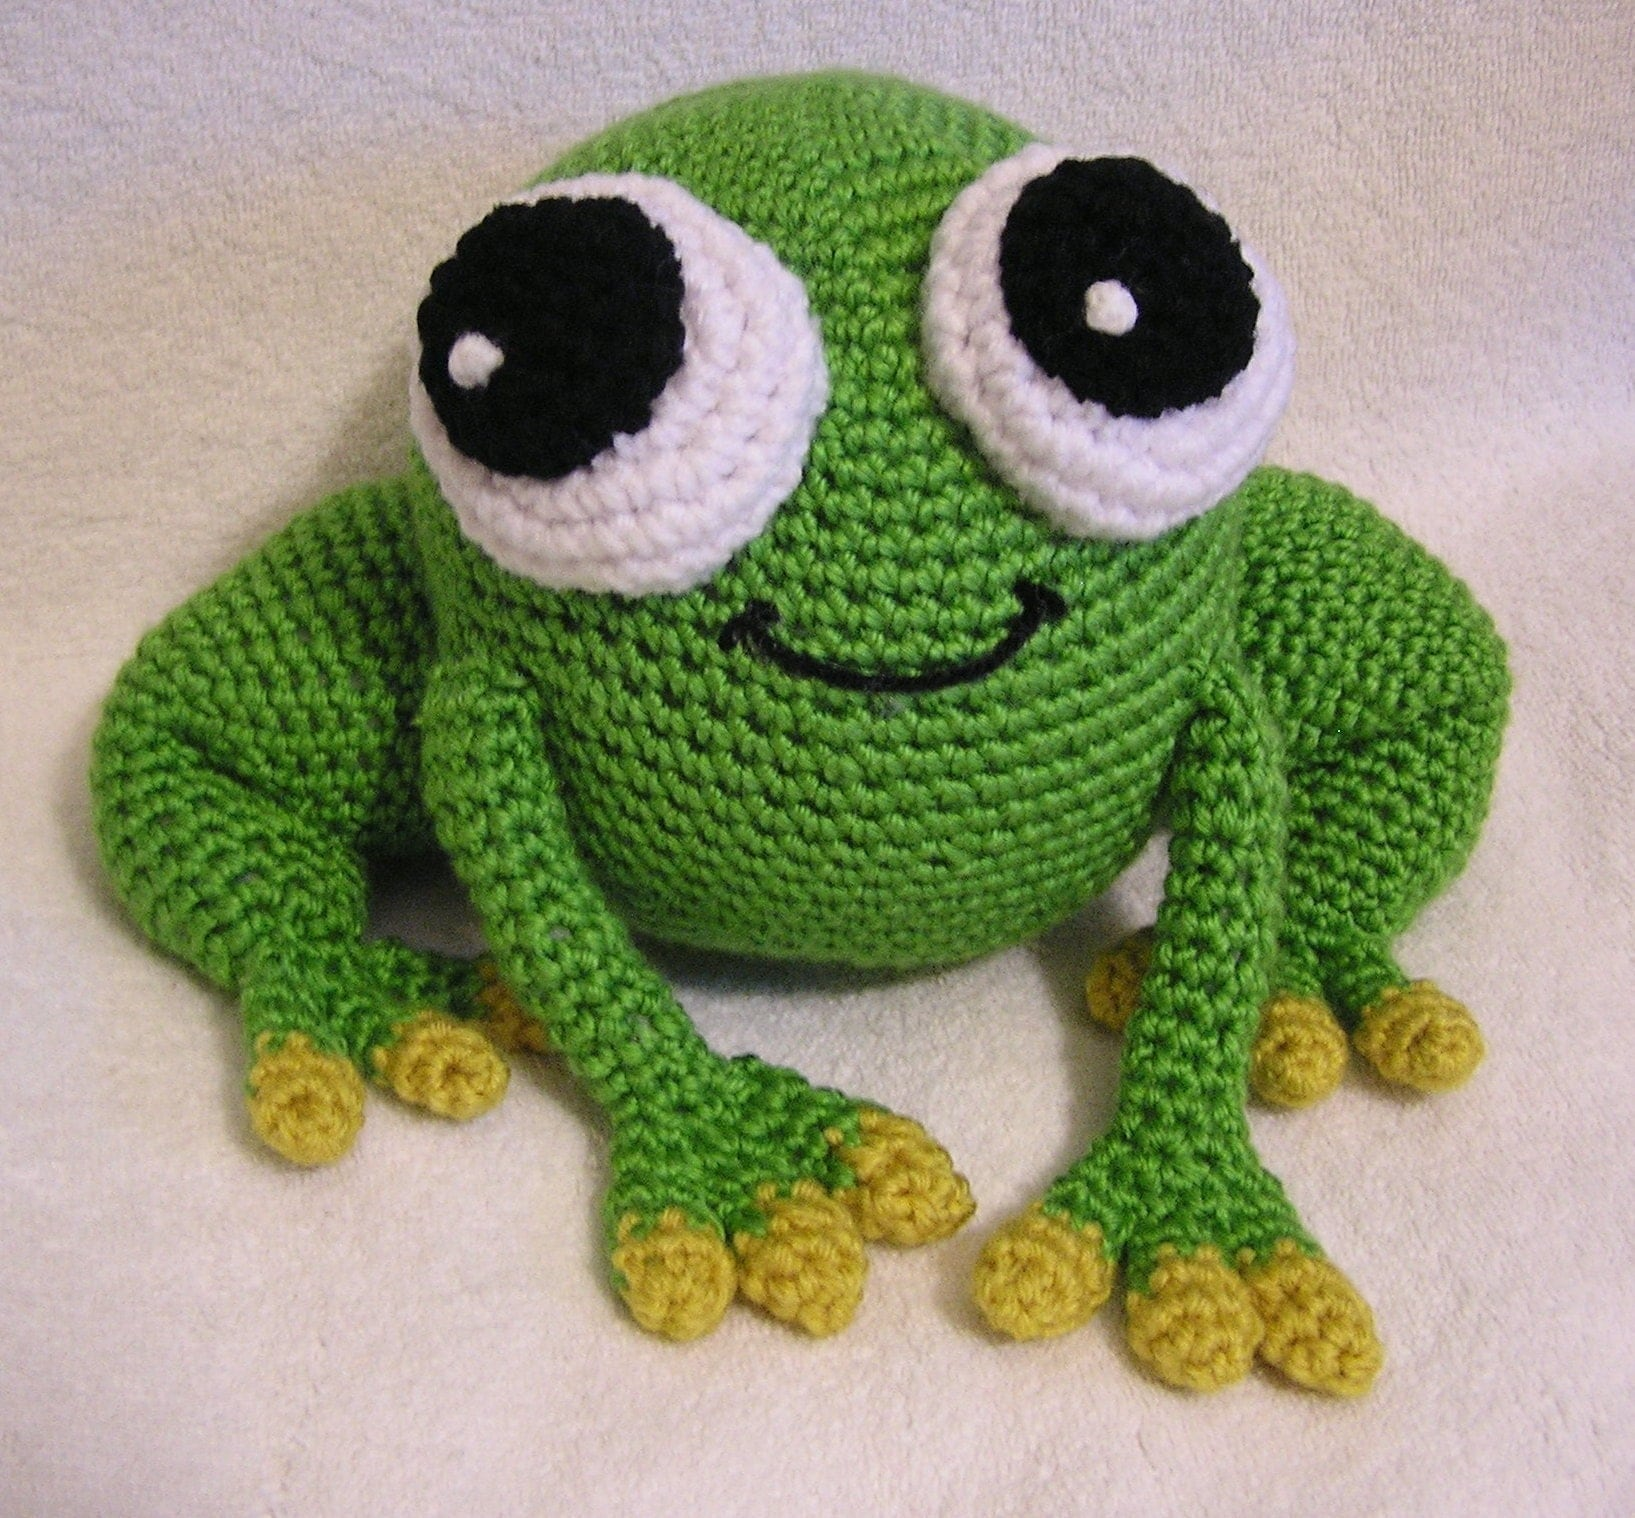 crochet frog pattern free free patterns. Black Bedroom Furniture Sets. Home Design Ideas